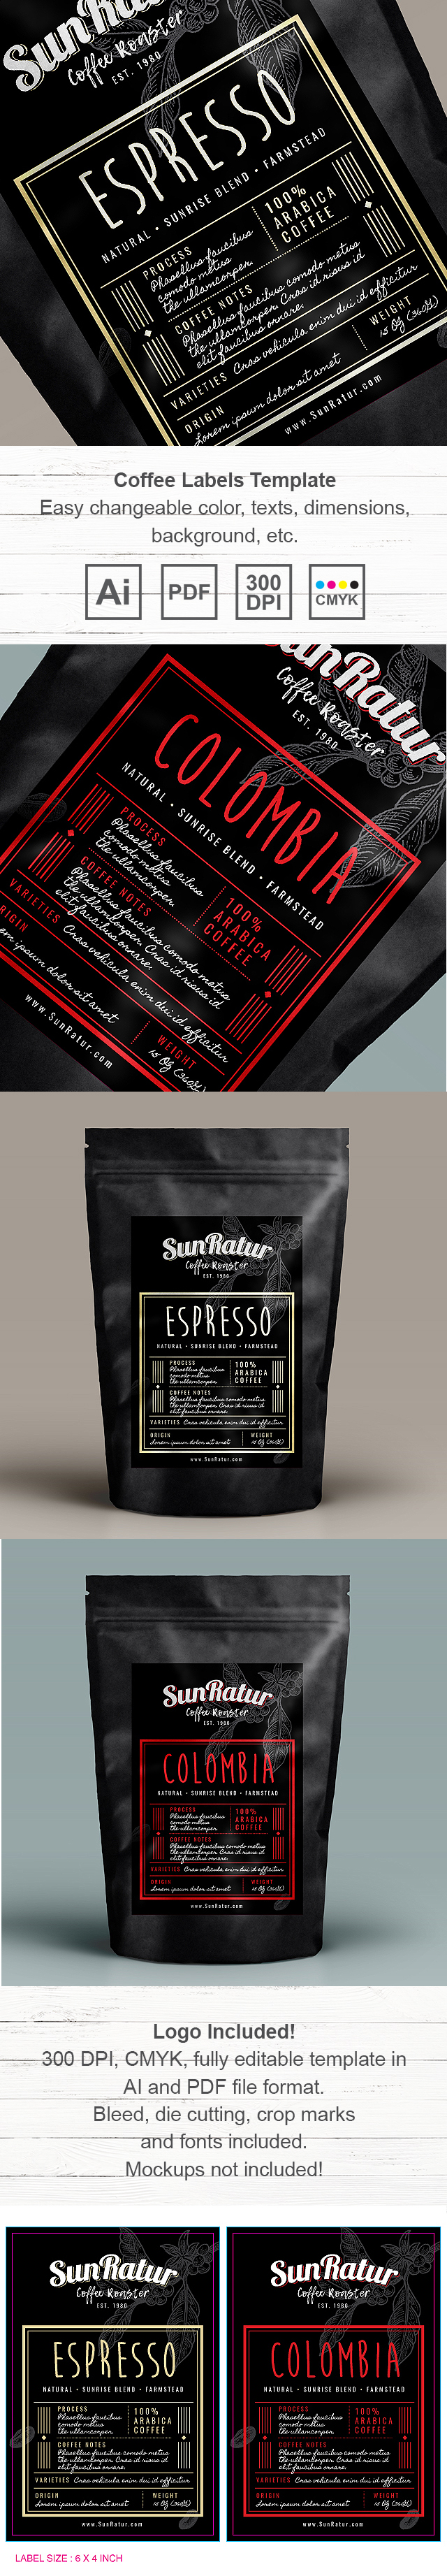 Coffee Labels Template